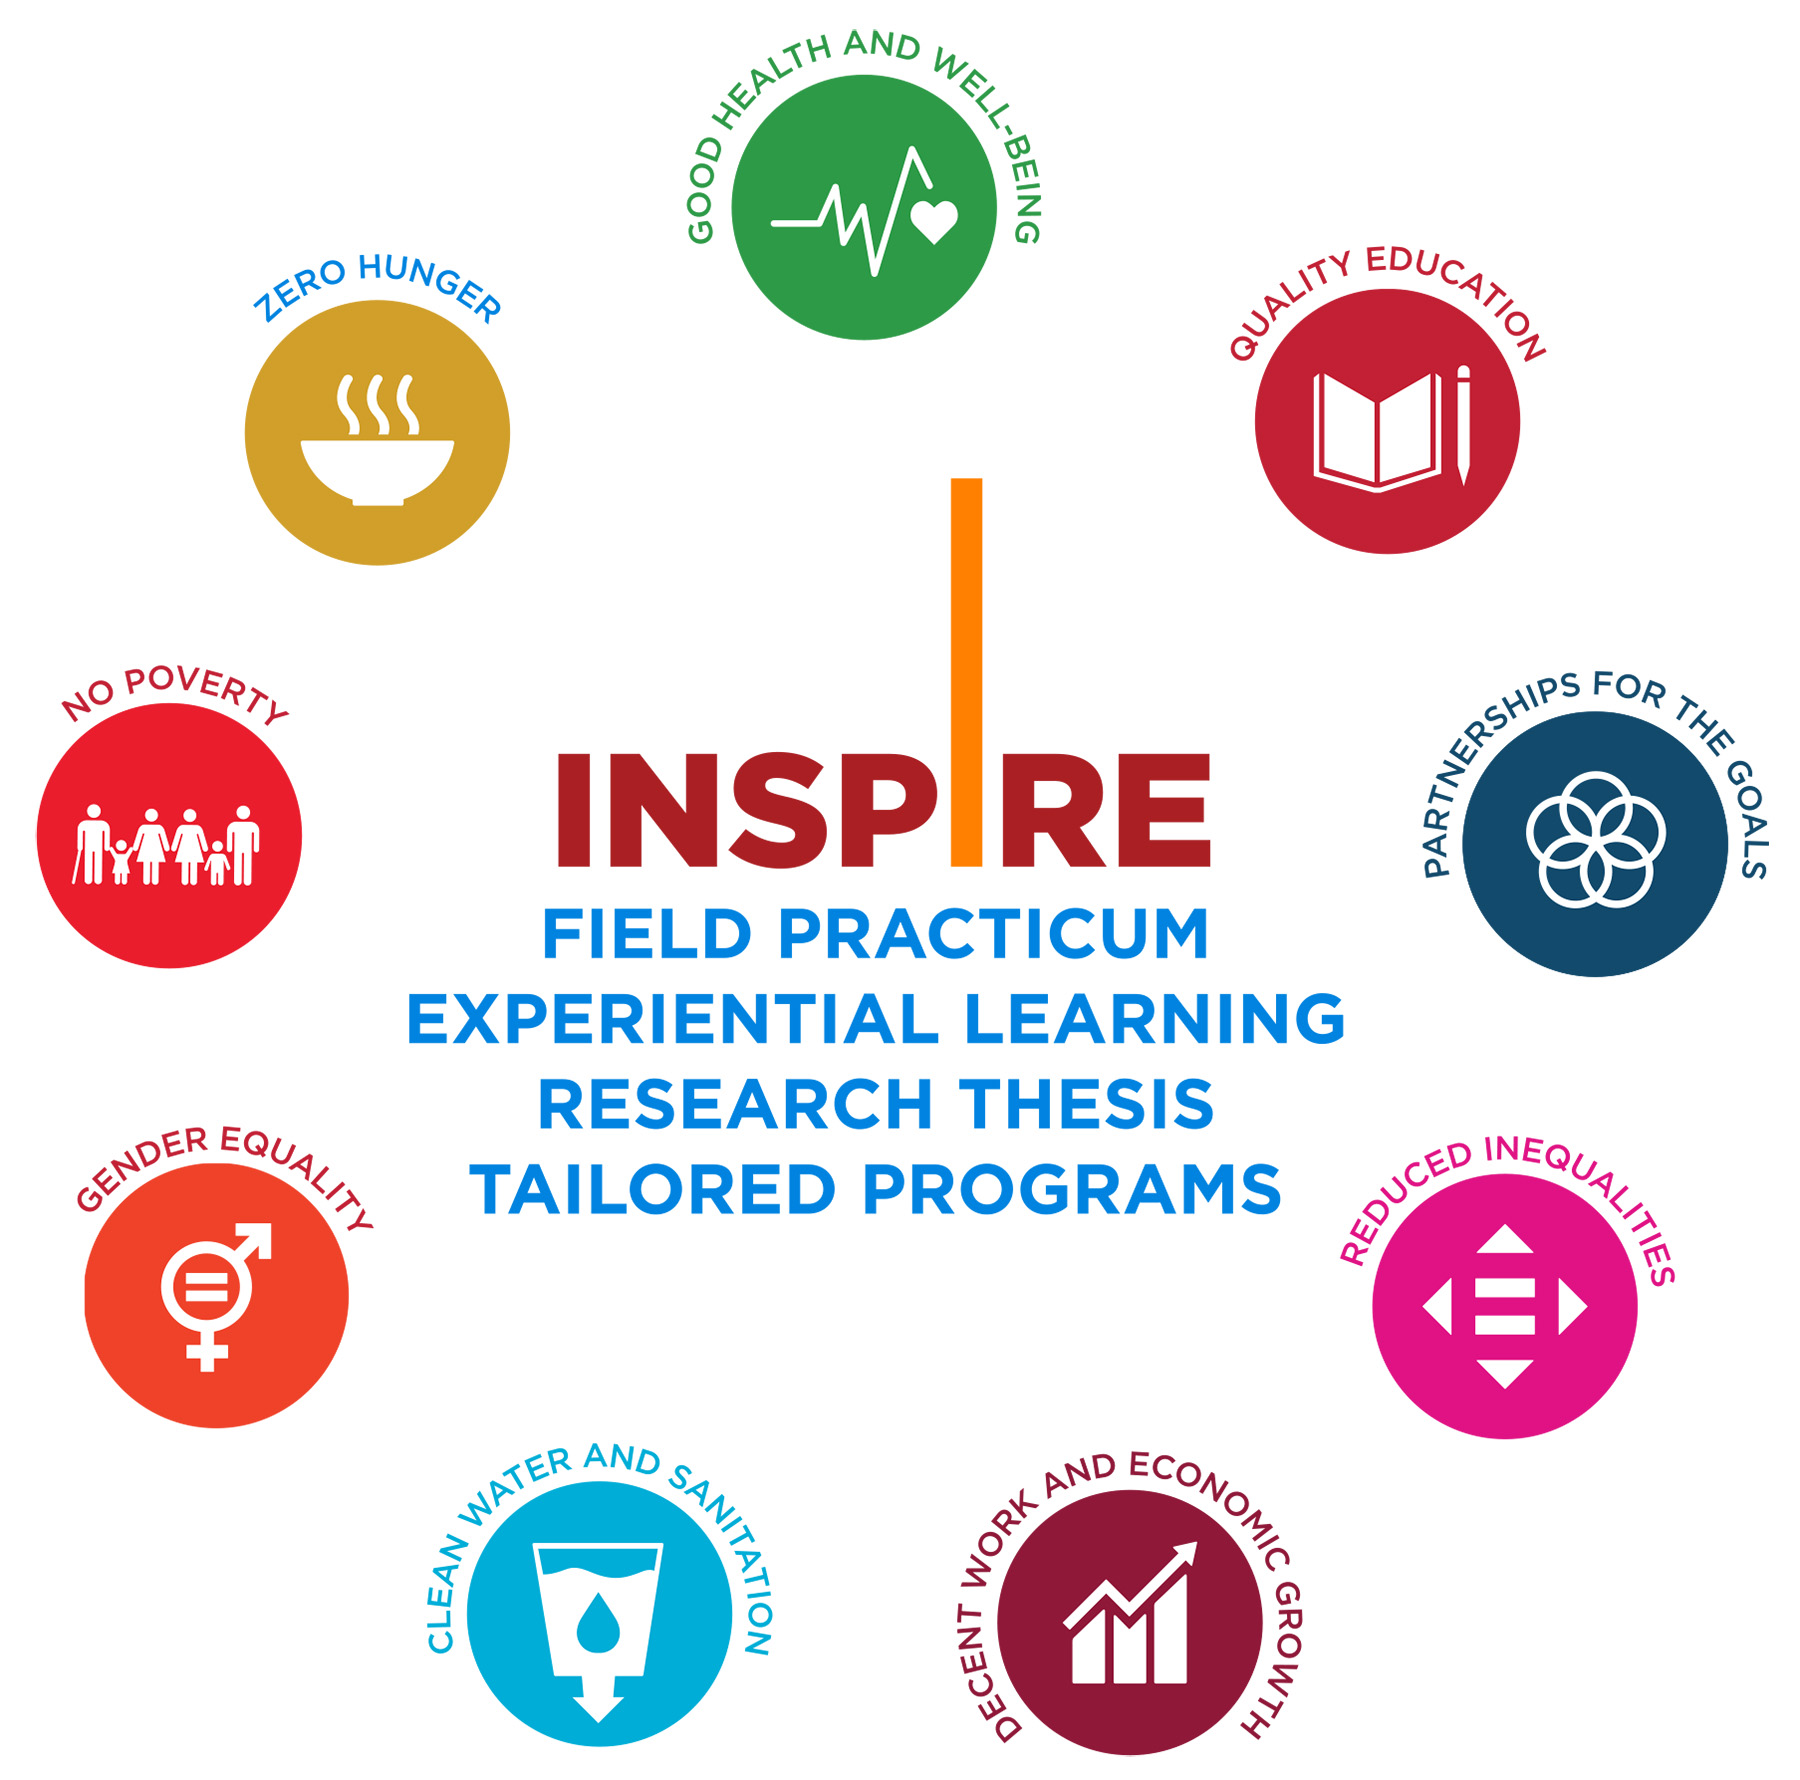 INSPIRE - An Interactive Novel Support Program for Innovation, Research and Entrepreneurship